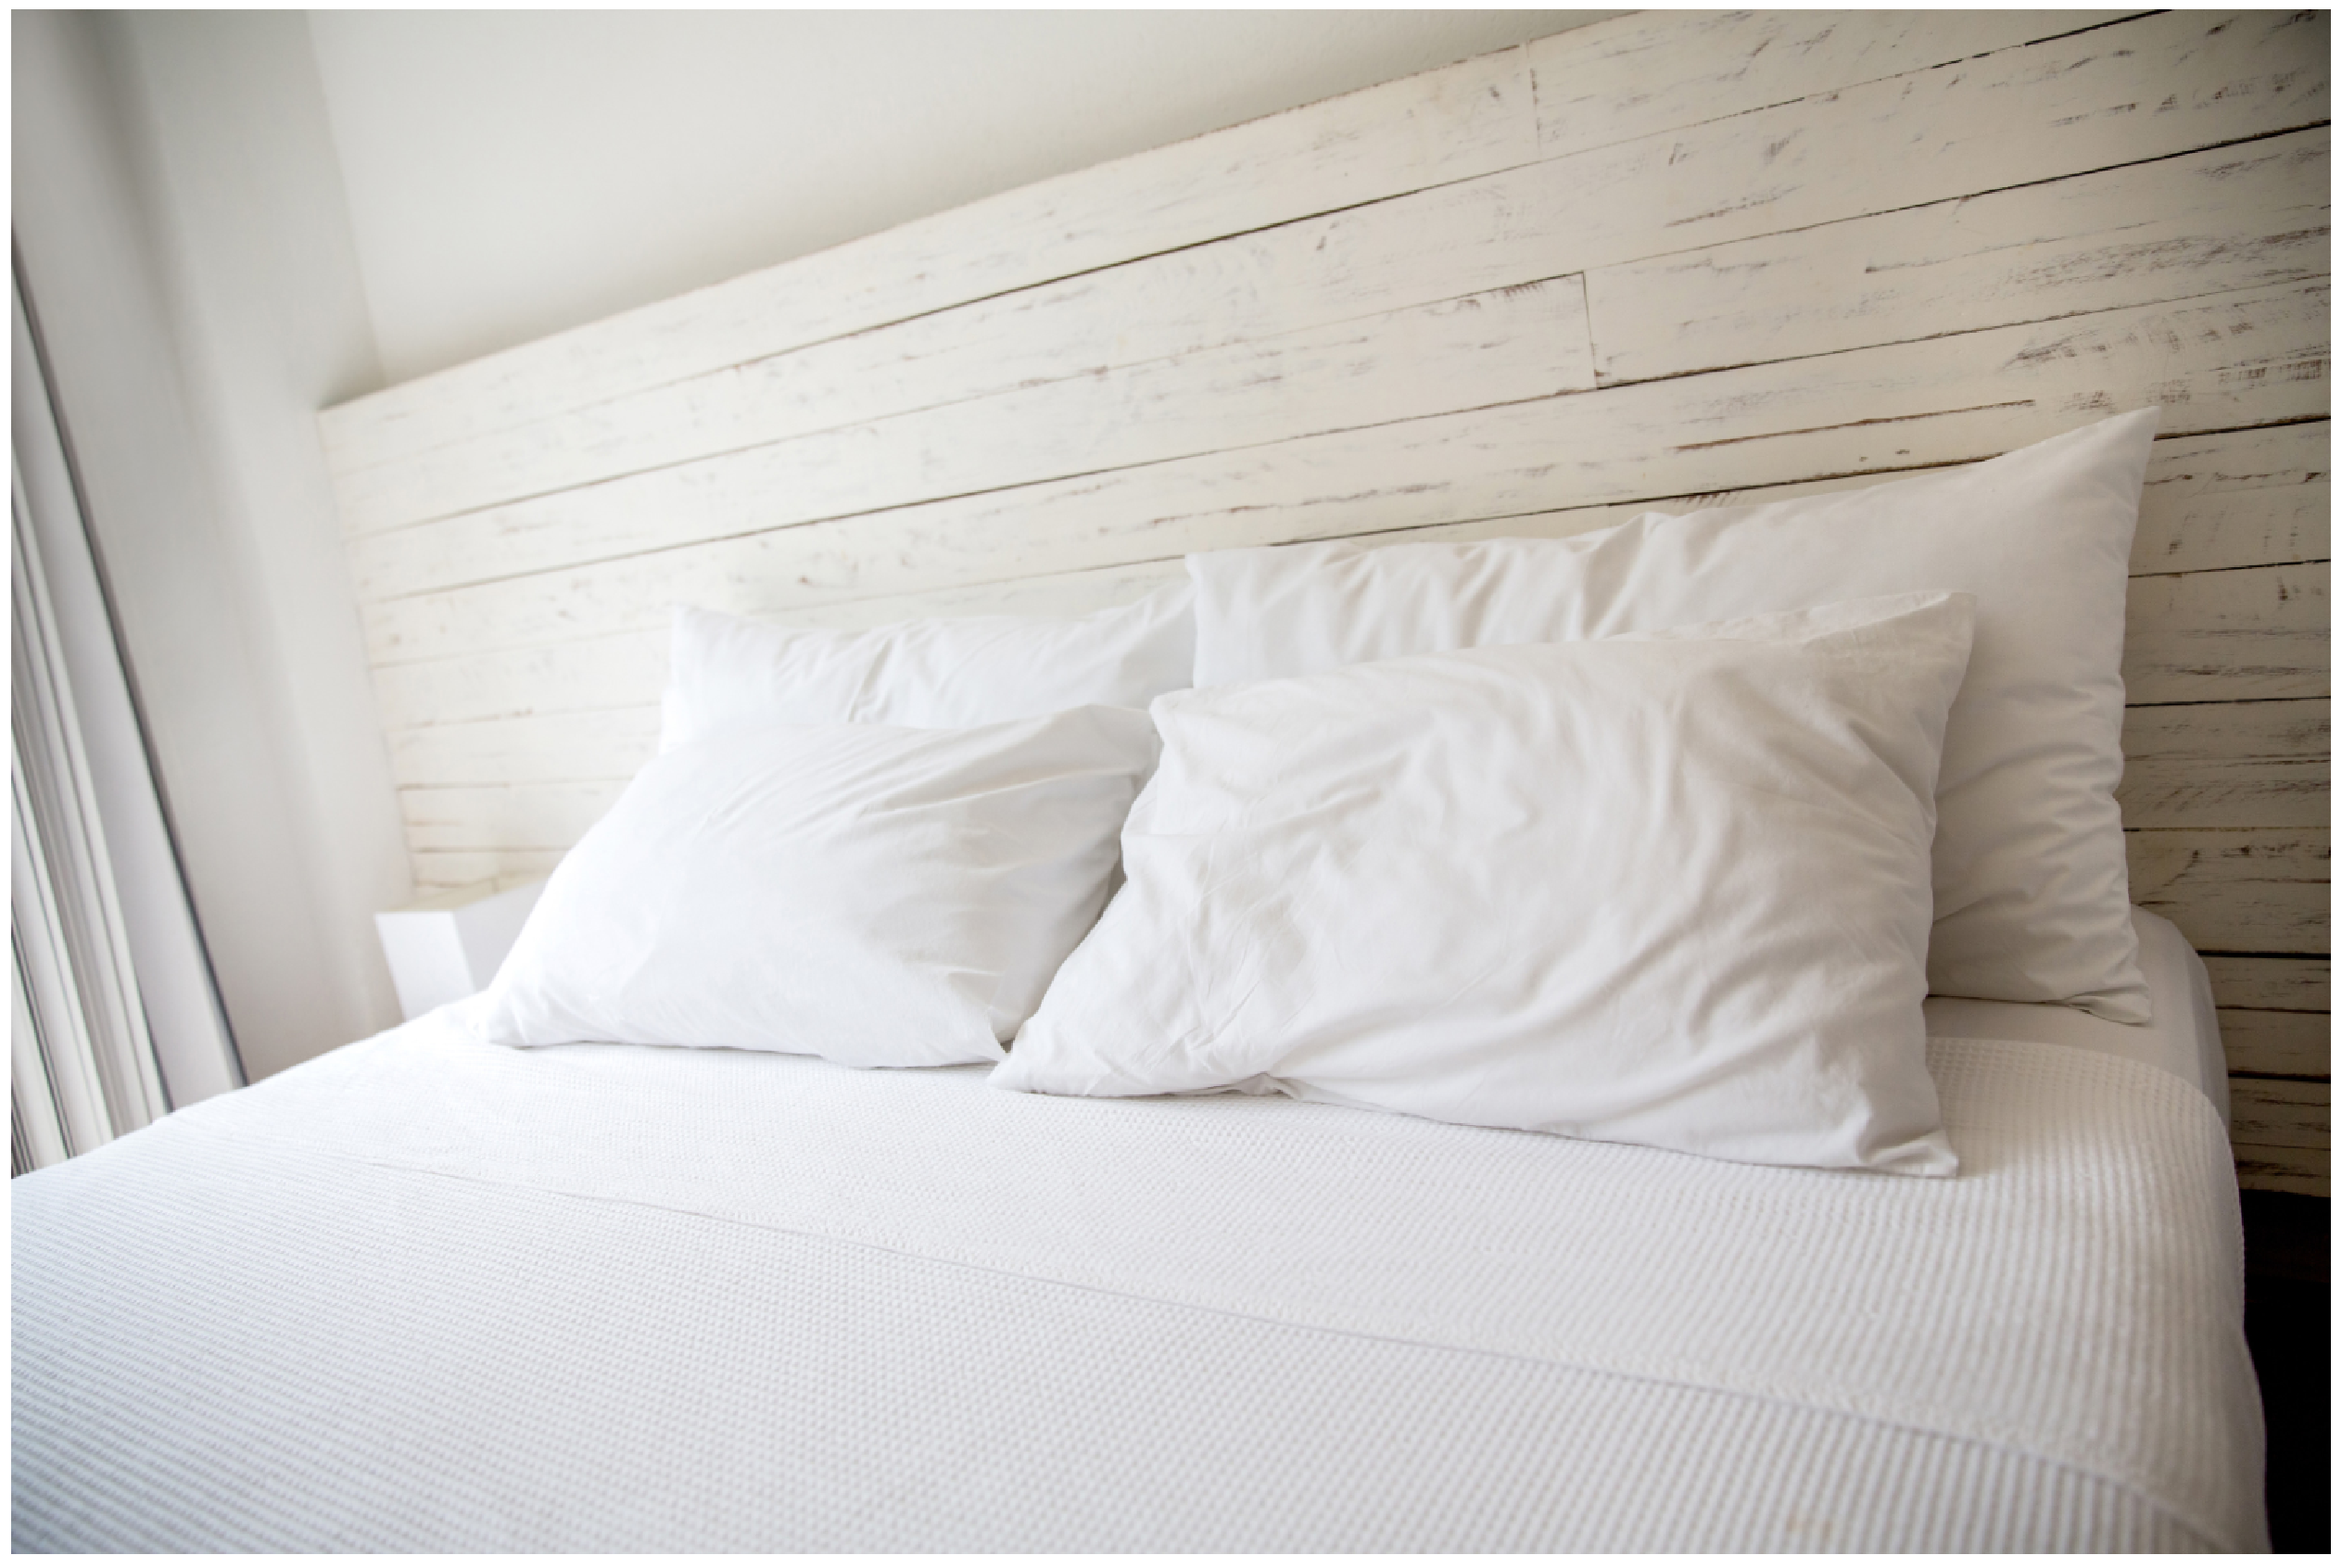 How Sheets And Blankets Help You Sleep